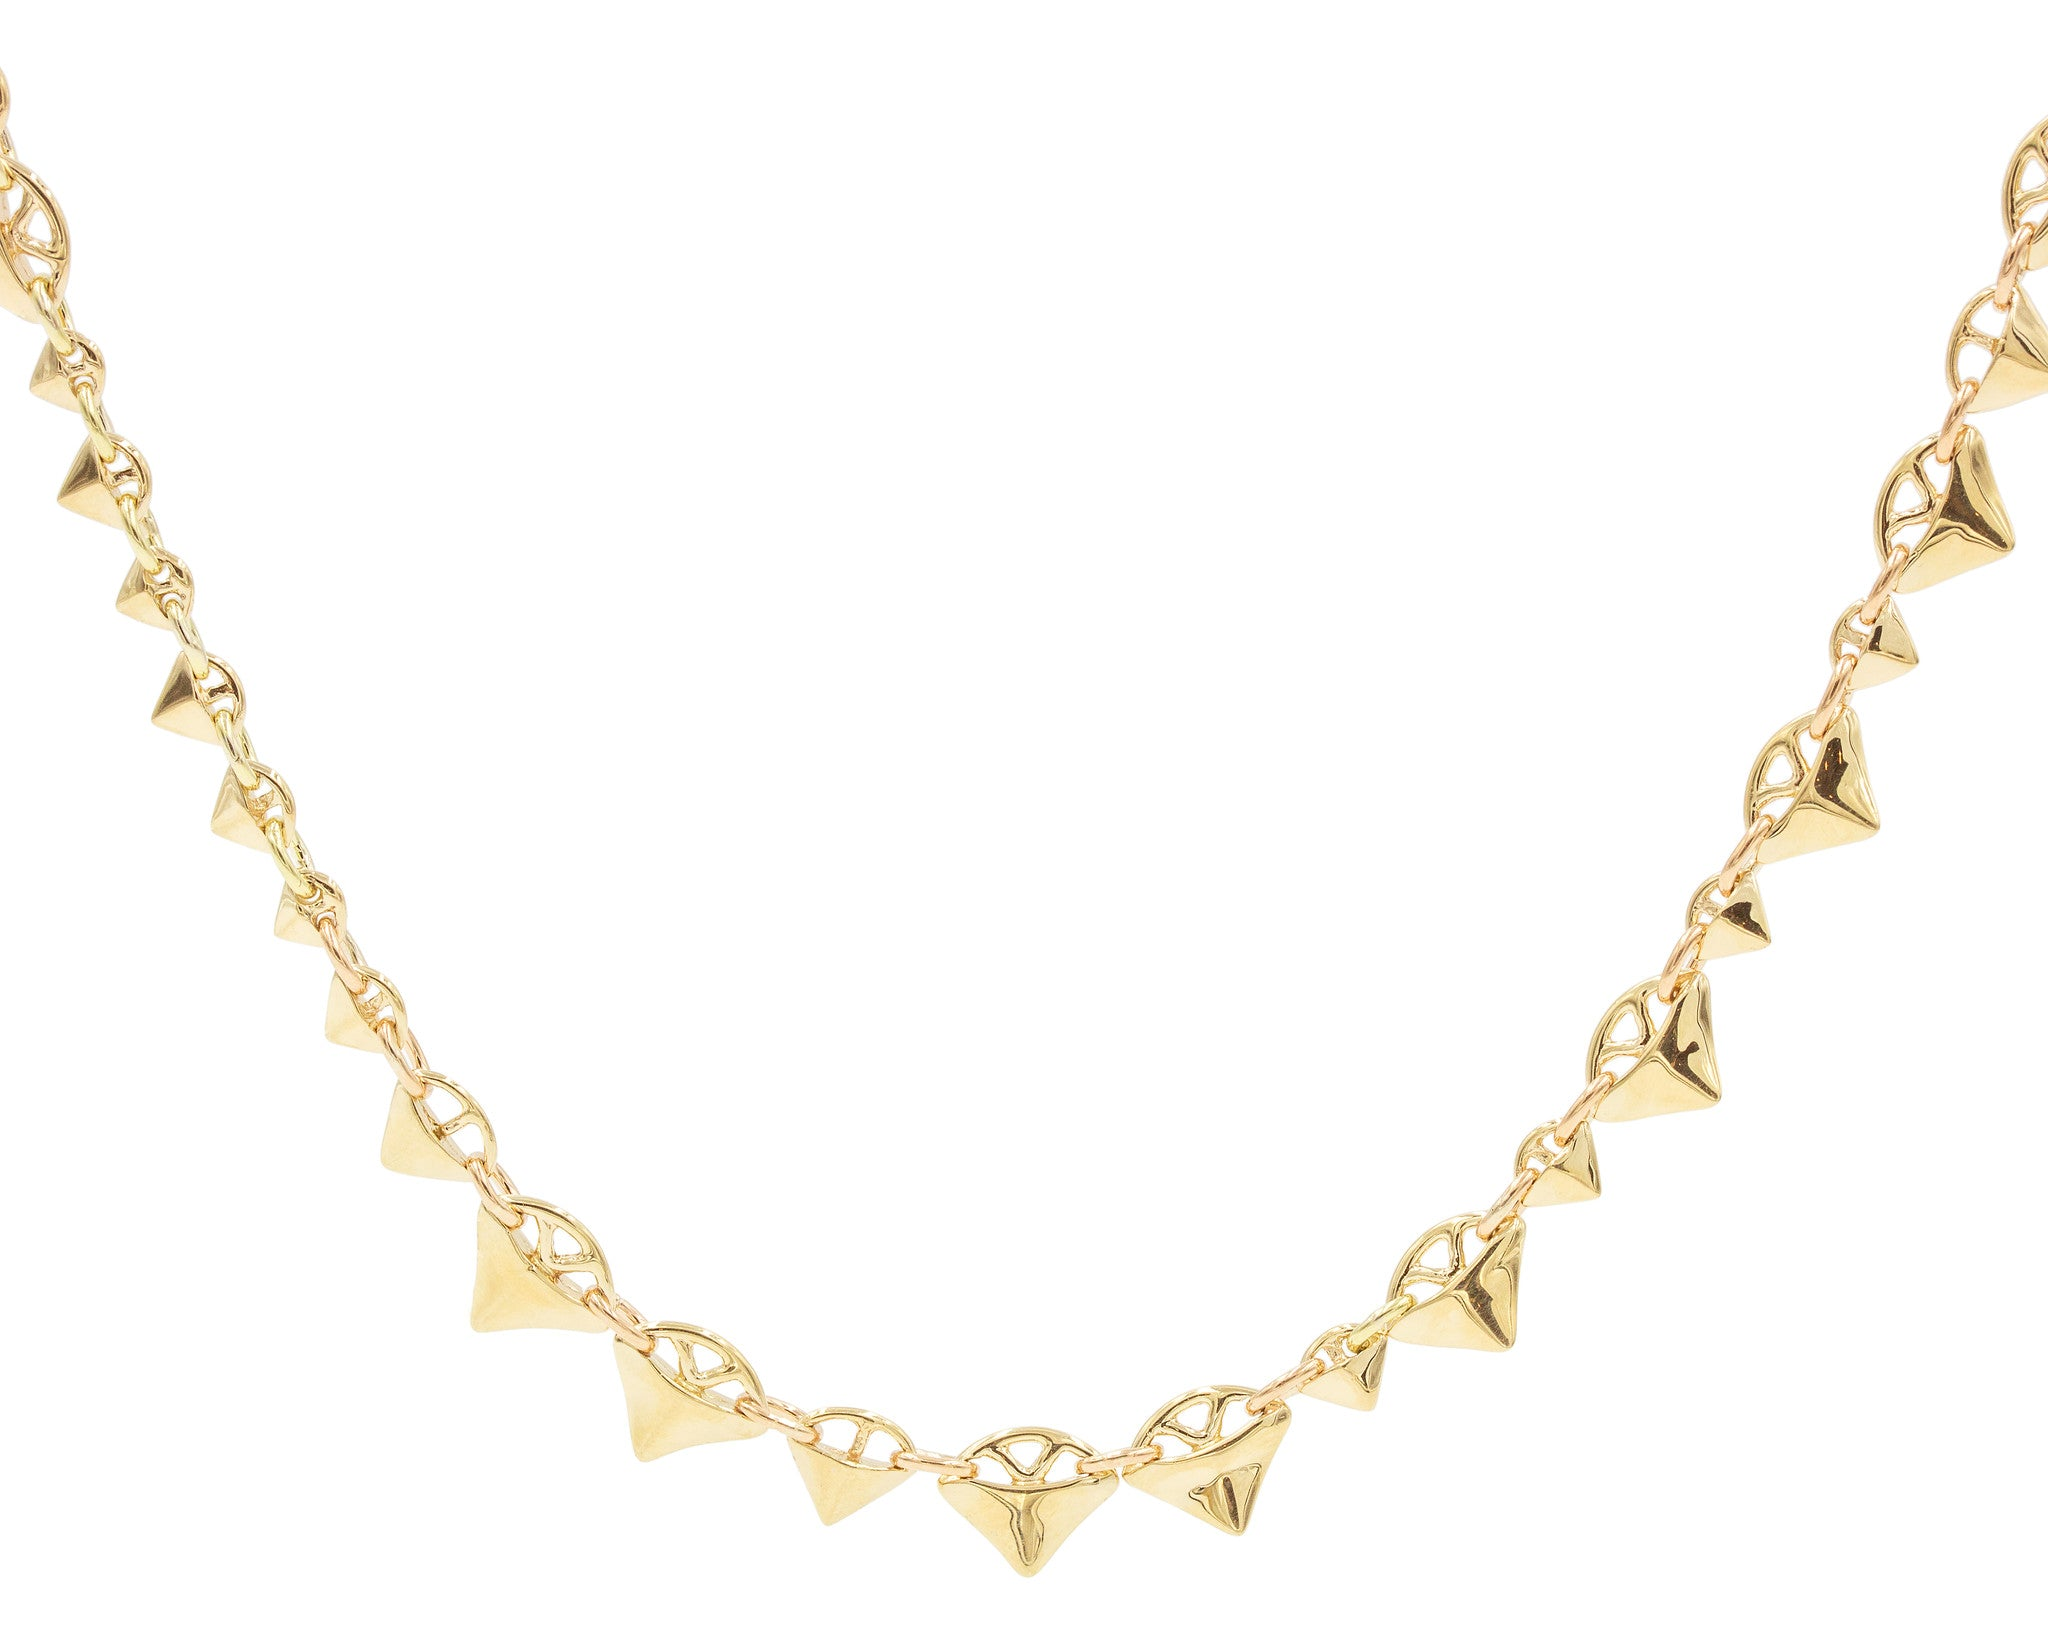 Gold Multi-Thorn Plokion Necklace